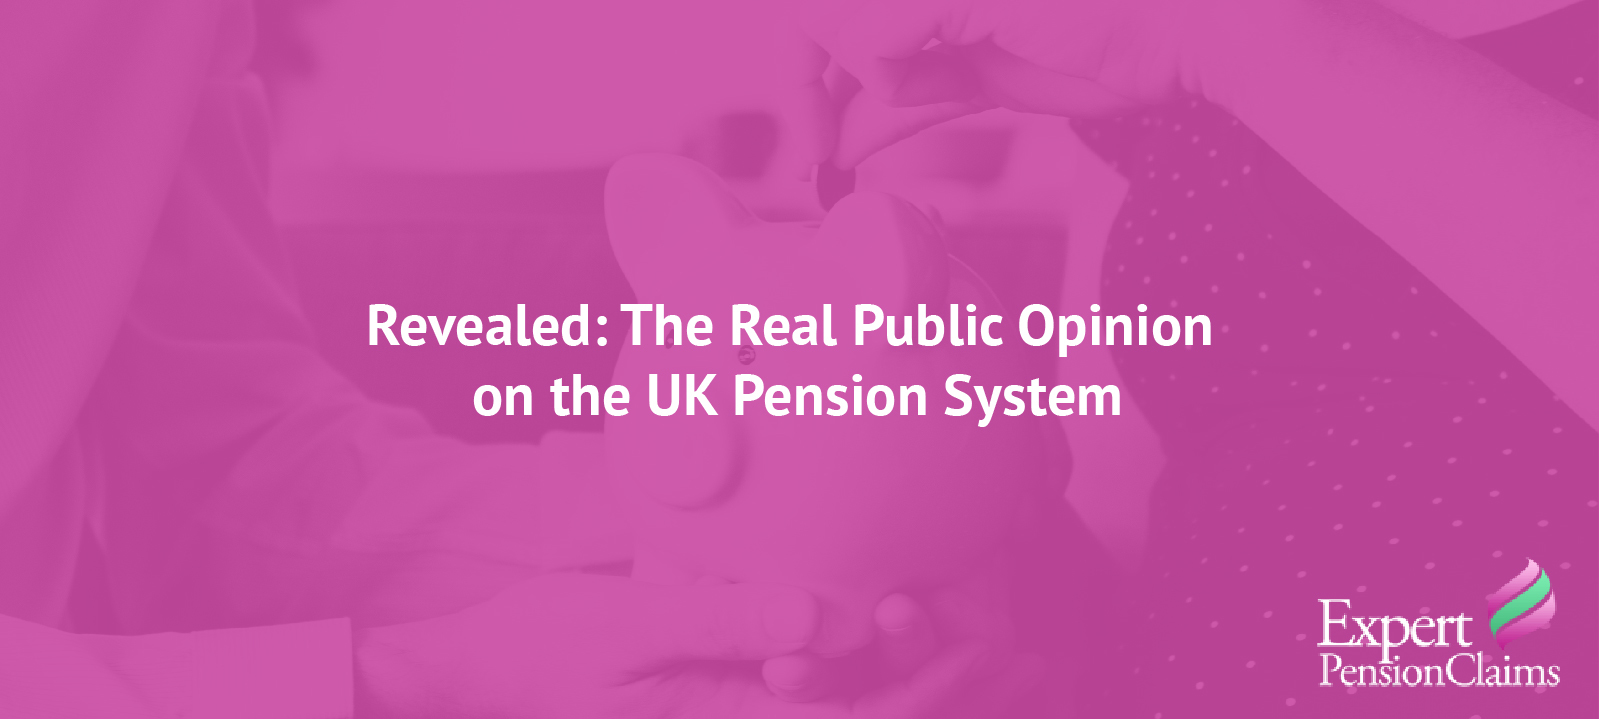 Revealed: The Real Public Opinion on the UK Pension System